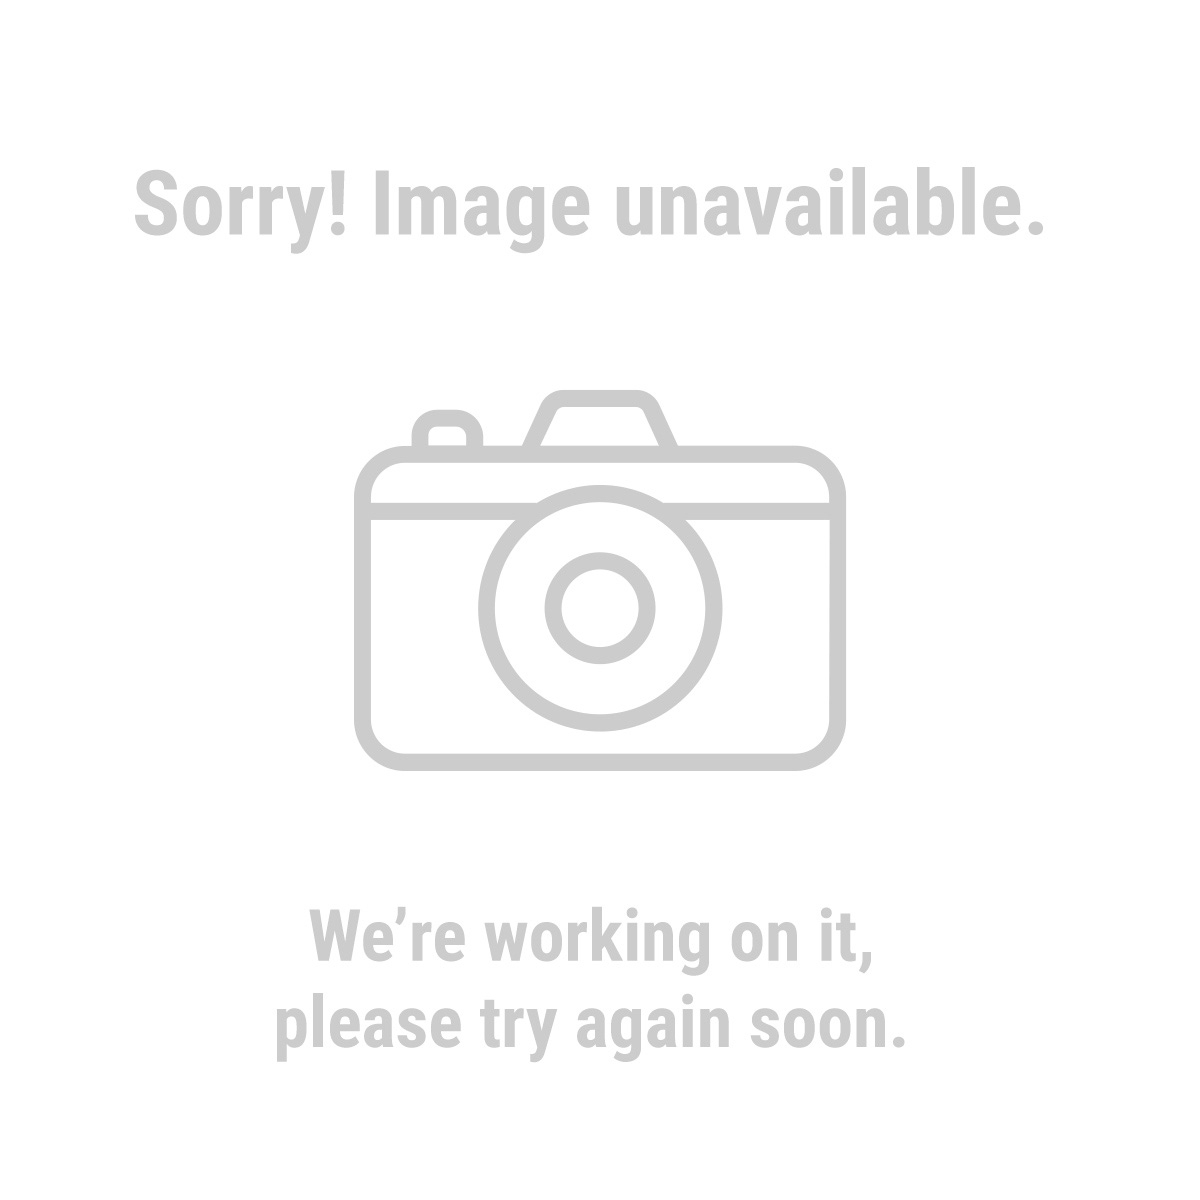 Predator Generators 69674 420cc, 6500 Watts Max/5500 Watts Rated Portable Generator - Certified for California